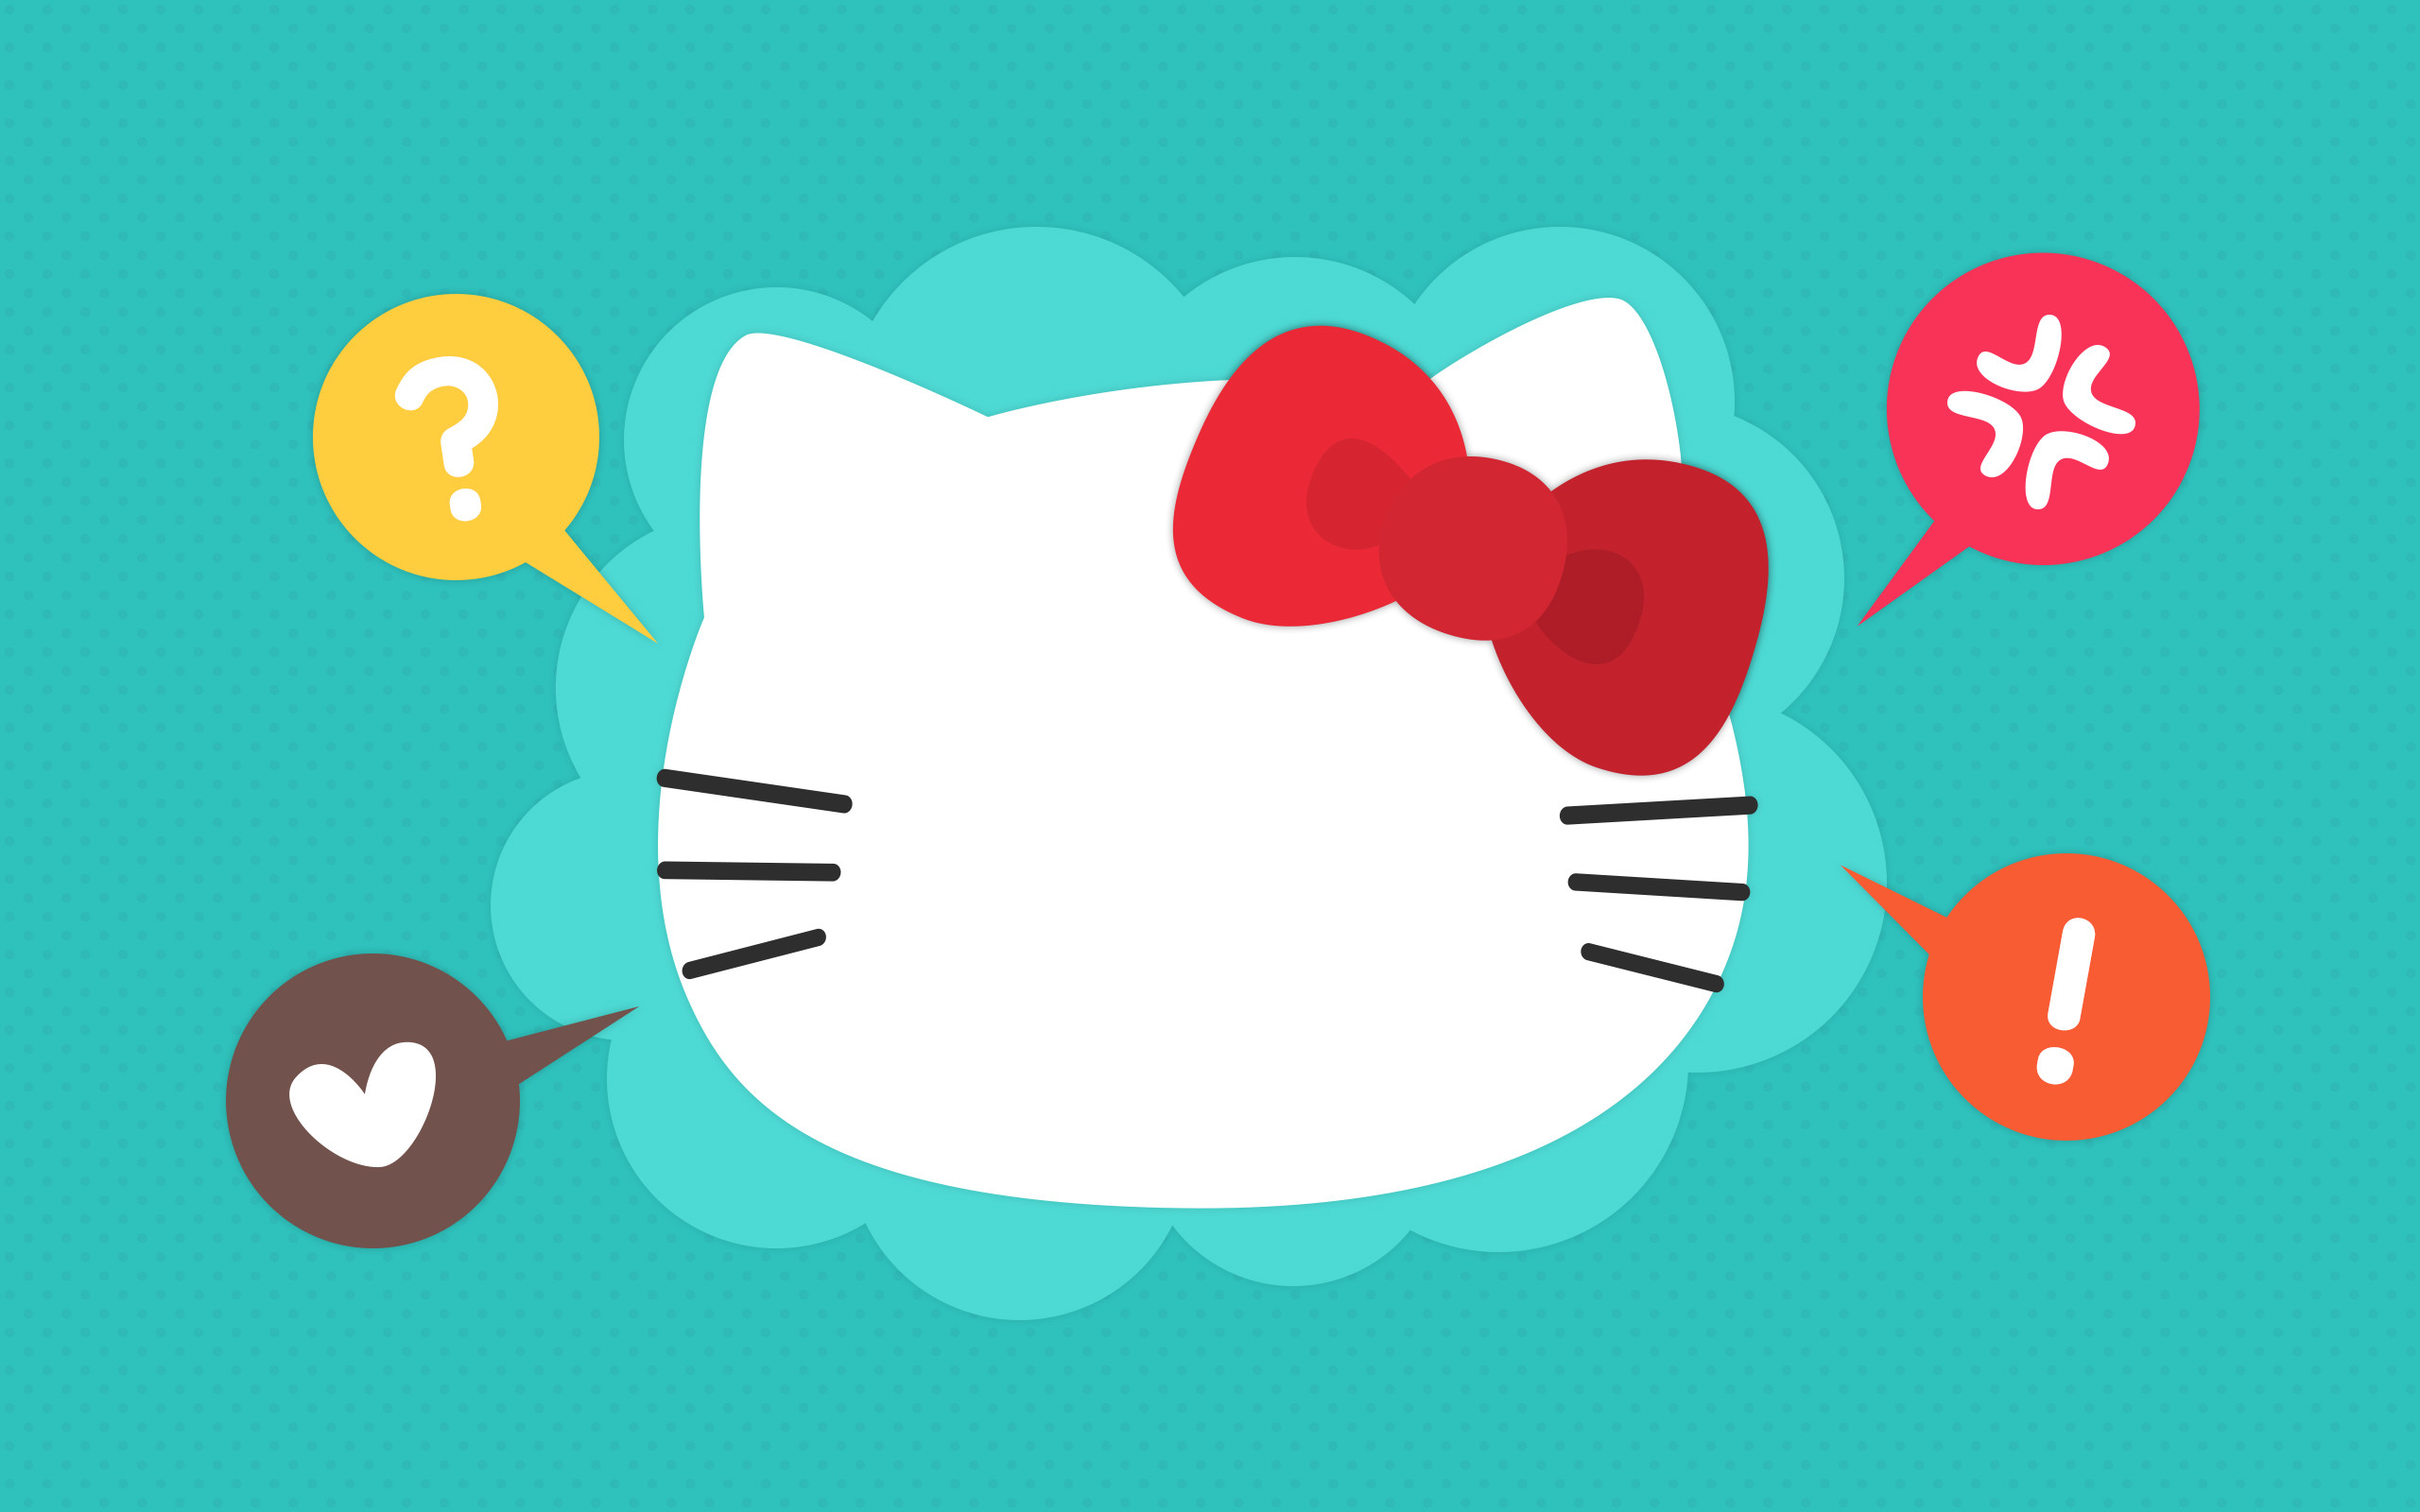 Fantastic Wallpaper Hello Kitty Spring - 1005921-amazing-hello-kitty-wallpapers-and-screensavers-2560x1600-for-iphone-5s  Trends_678791.jpg